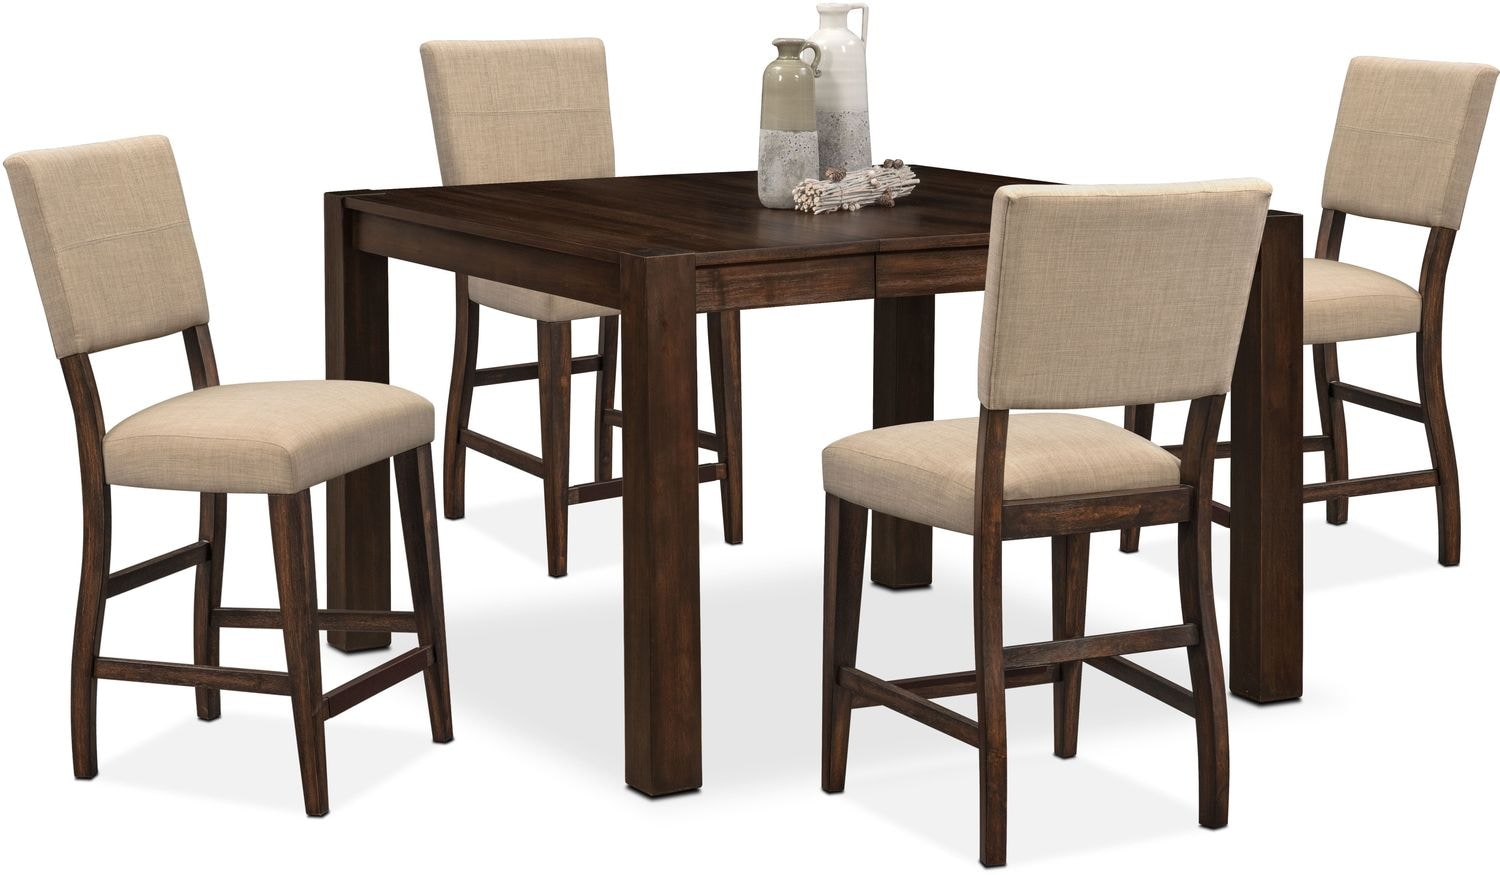 Dining Room Furniture   Tribeca Counter Height Table And 4 Upholstered Side  Chairs   Tobacco